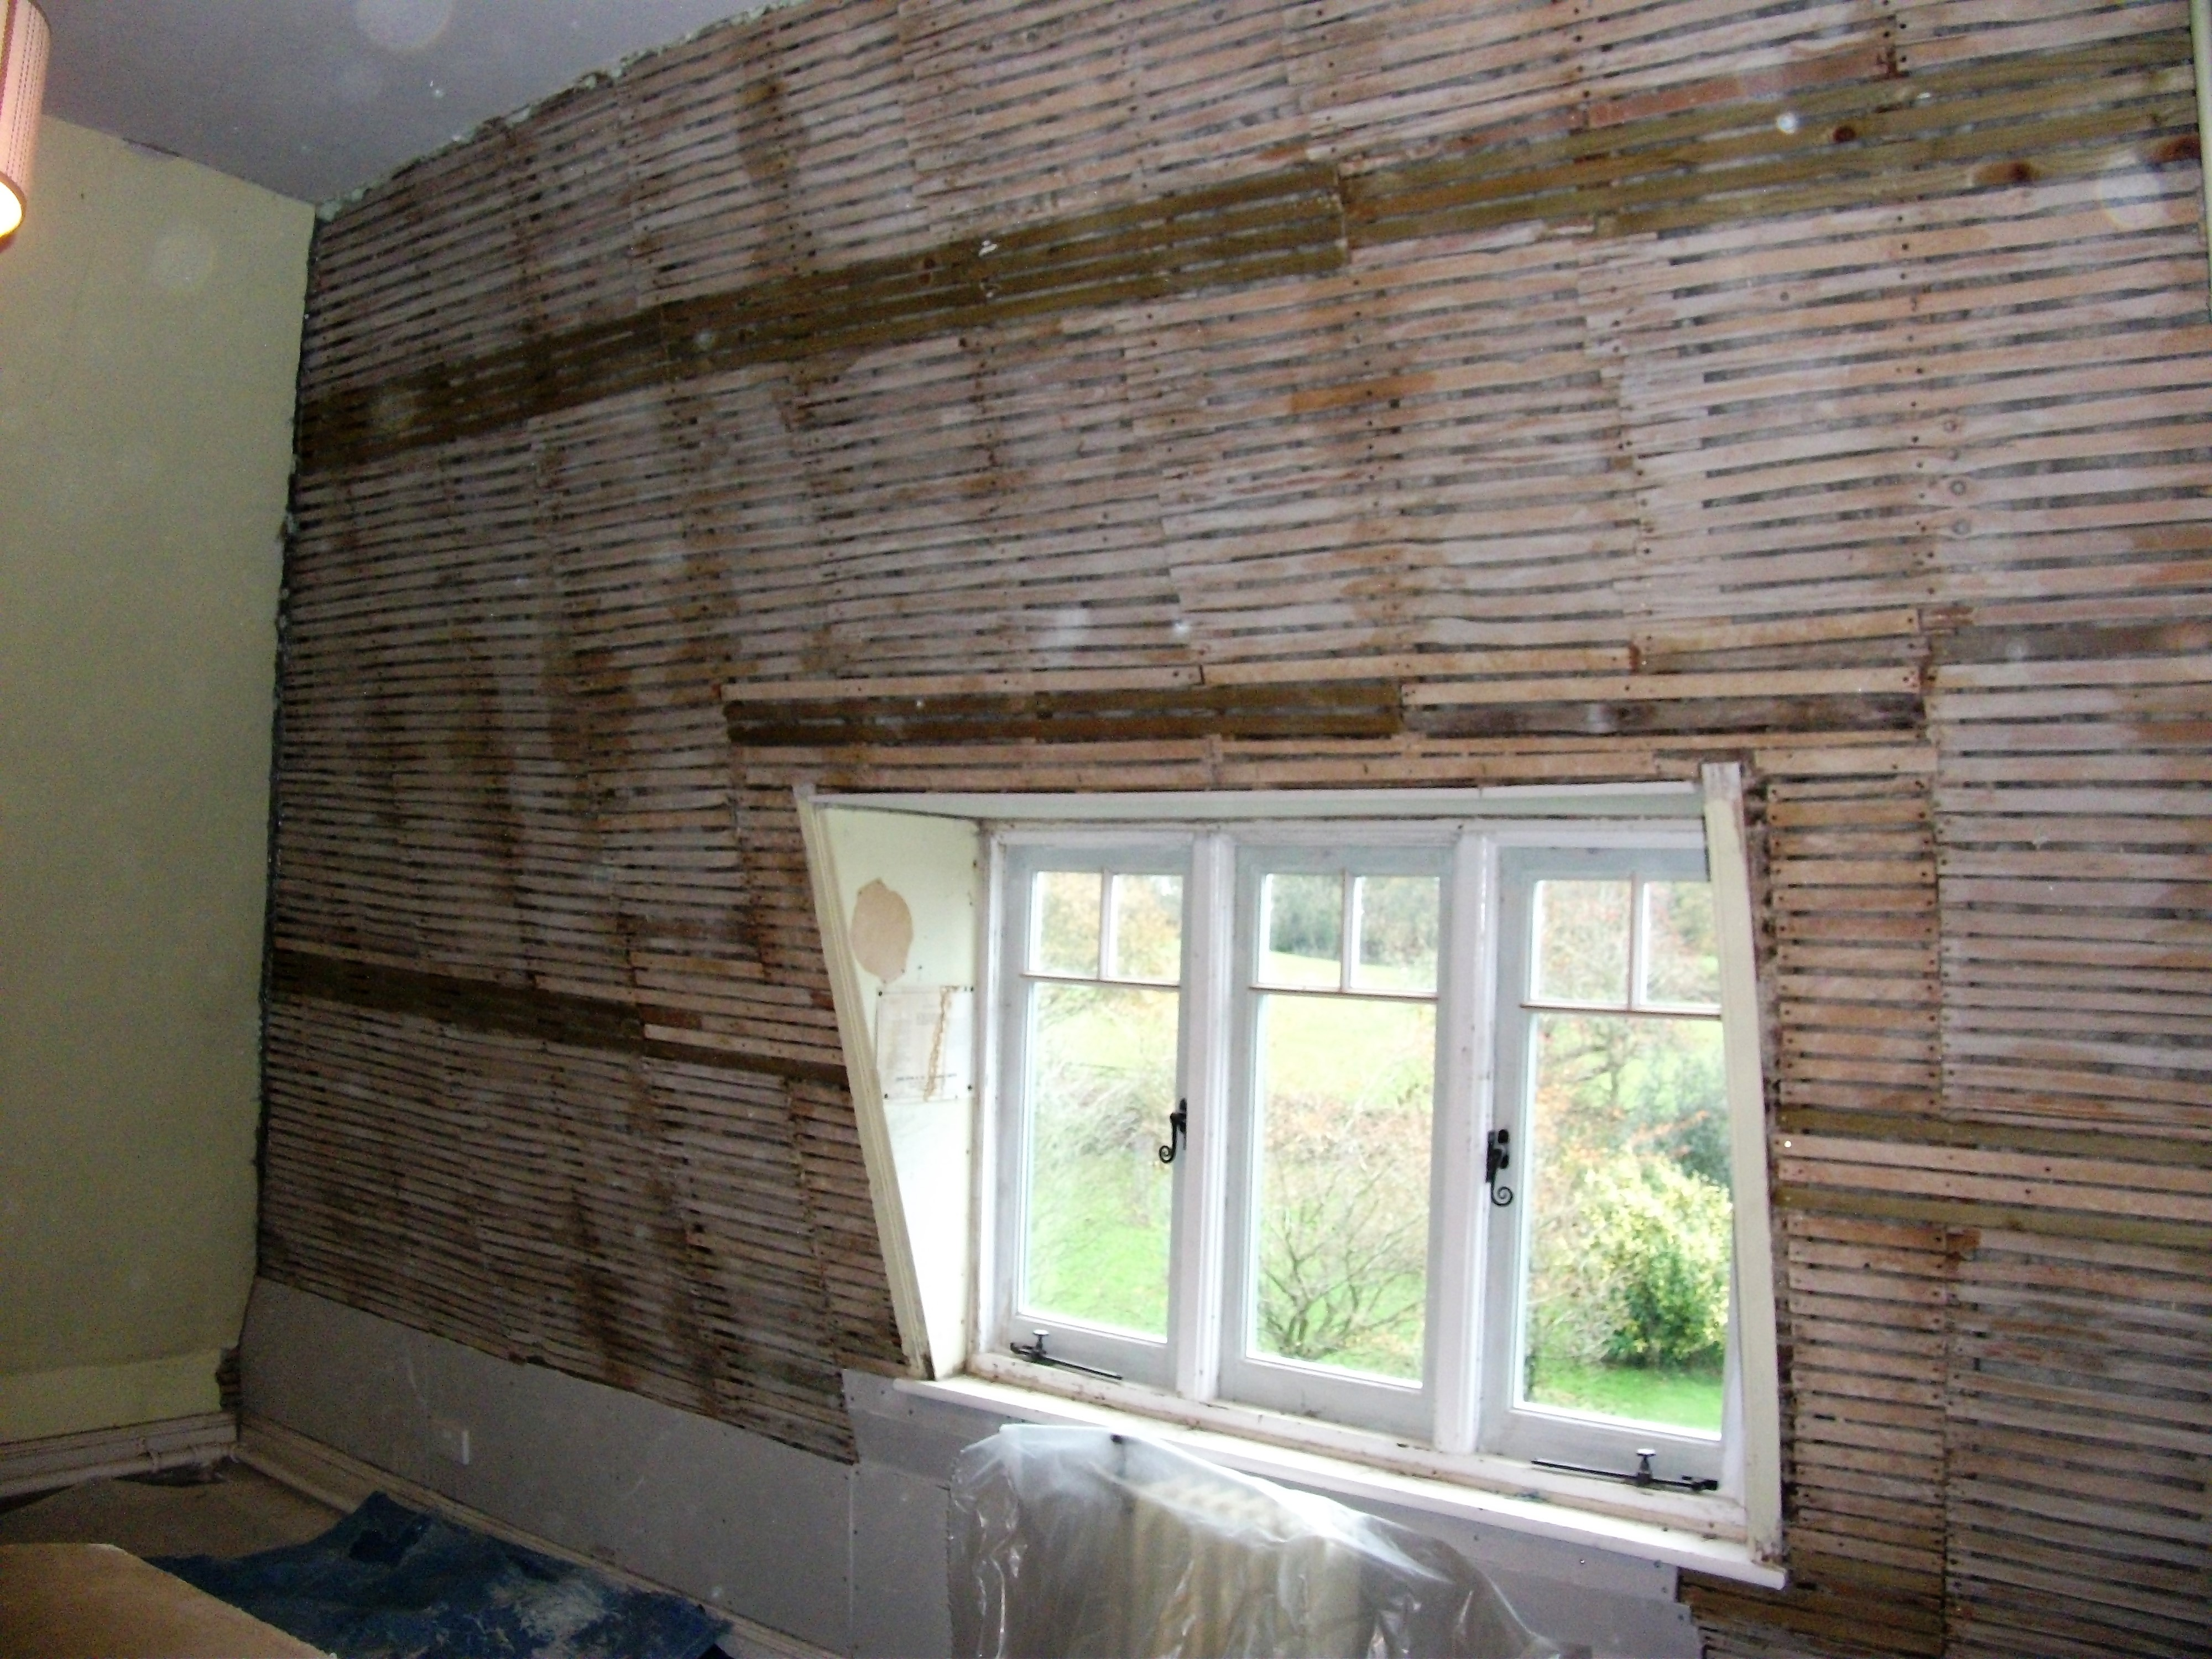 Existing laths ready for the first coat of Hemp lime plaster